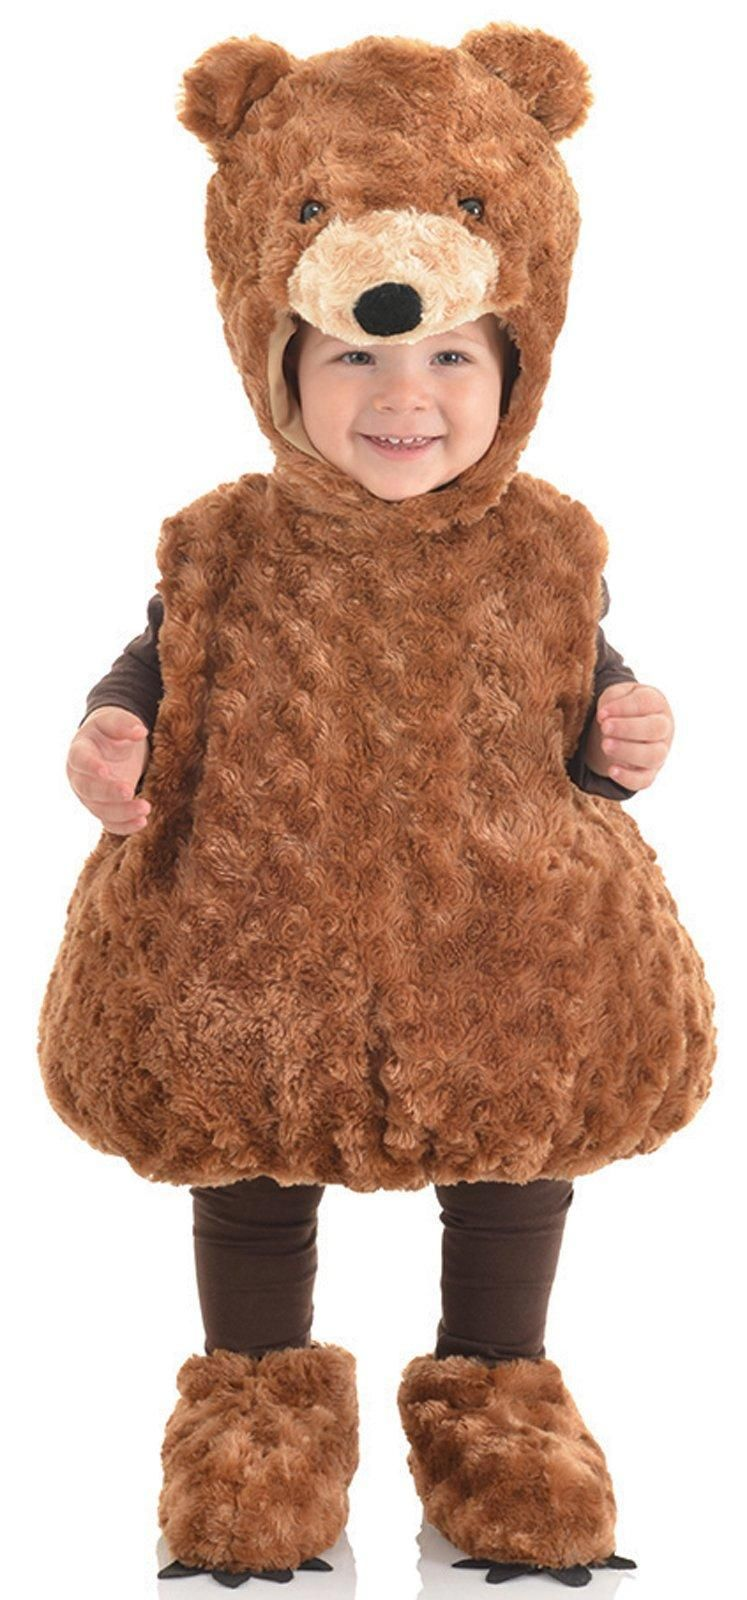 Teddy Bear Costume For Toddlers from Buycostumes.com  sc 1 st  Pinterest & Teddy Bear Costume For Toddlers from Buycostumes.com | Hagit ...